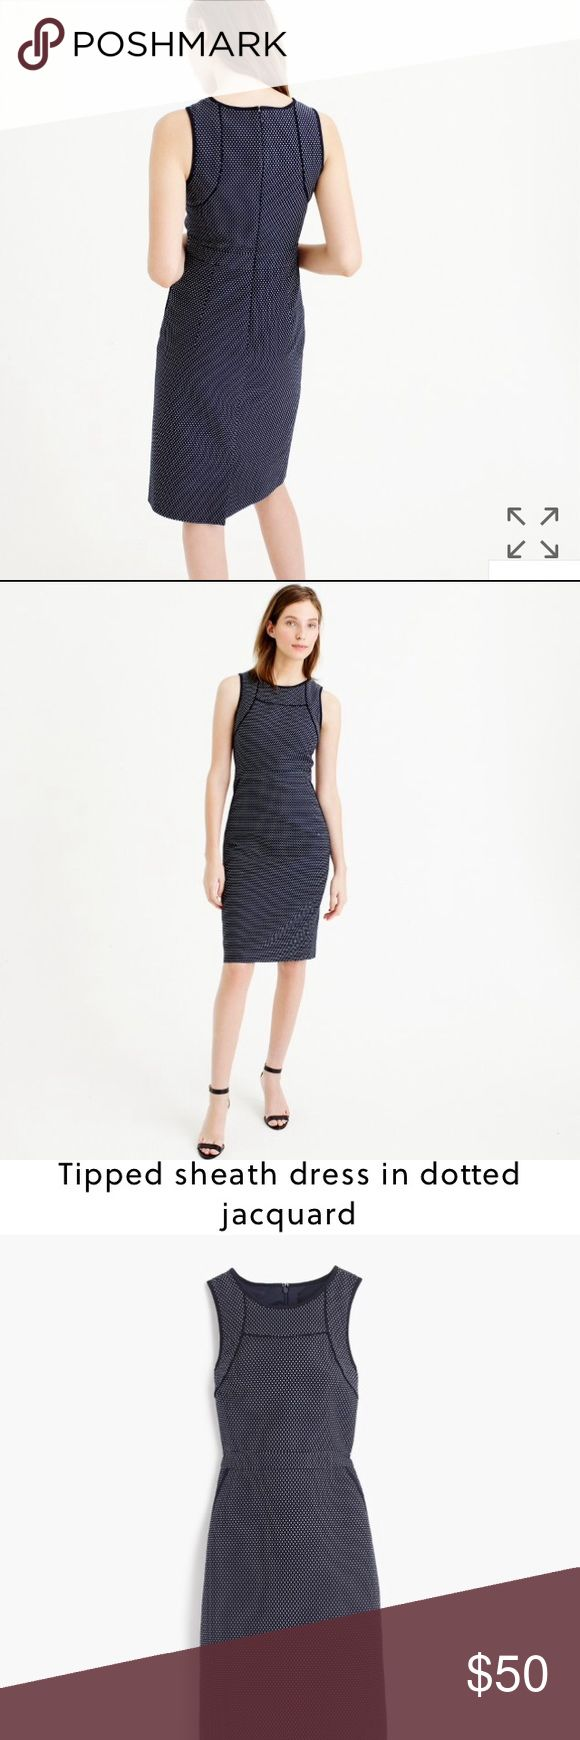 """J. Crew Tipped sheath dress in dotted jacquard We sourced this tiny dot jacquard print from a three-generation family-owned mill in Lyon, France, that produces over 2,000 original in-house designs each year. Also worth noting? The classic, ultra-flattering sheath dress silhouette has pockets.  Cotton/poly. Back zip. Dry clean. Import. Item E8665.  Fitted silhouette. Falls above knee, 40"""" from high point of shoulder (based on size 6). J. Crew Dresses Midi"""